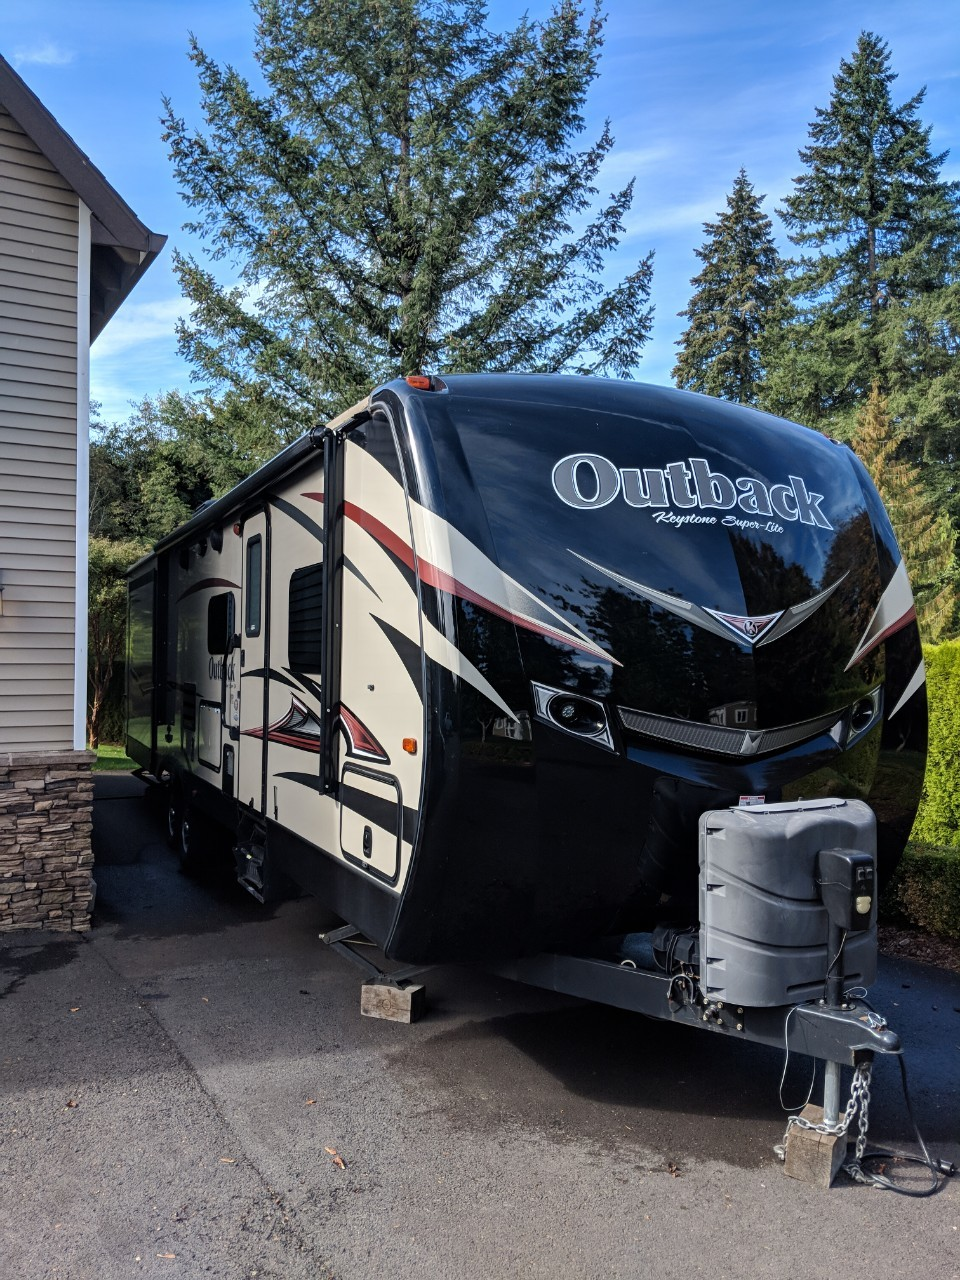 5 Keystone Outback 322bh Travel Trailers For Sale Rv Trader Equalizer Weight Distribution W 4point Sway Control No Shank